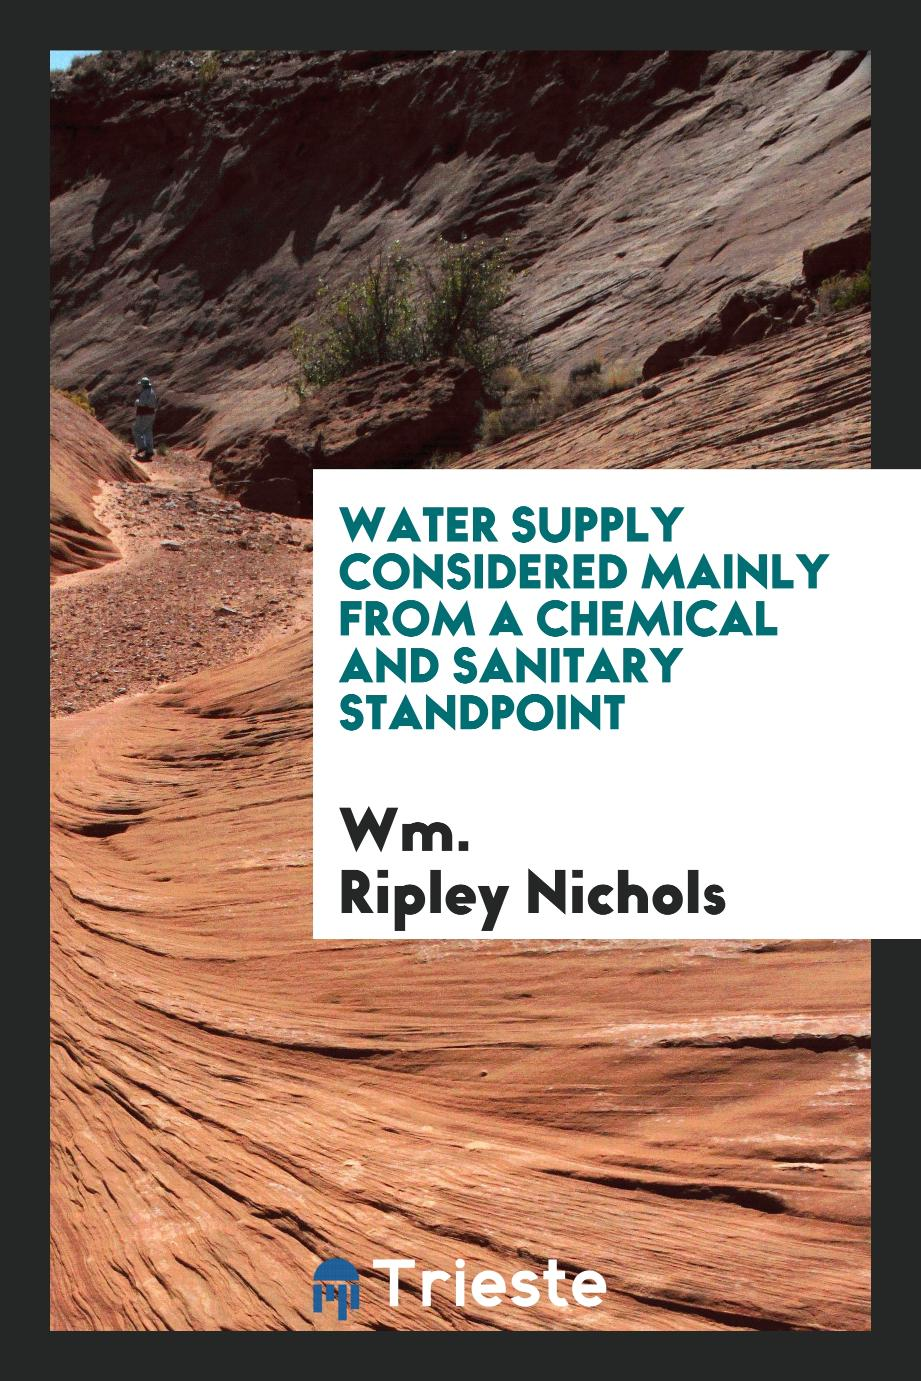 Water supply considered mainly from a chemical and sanitary standpoint